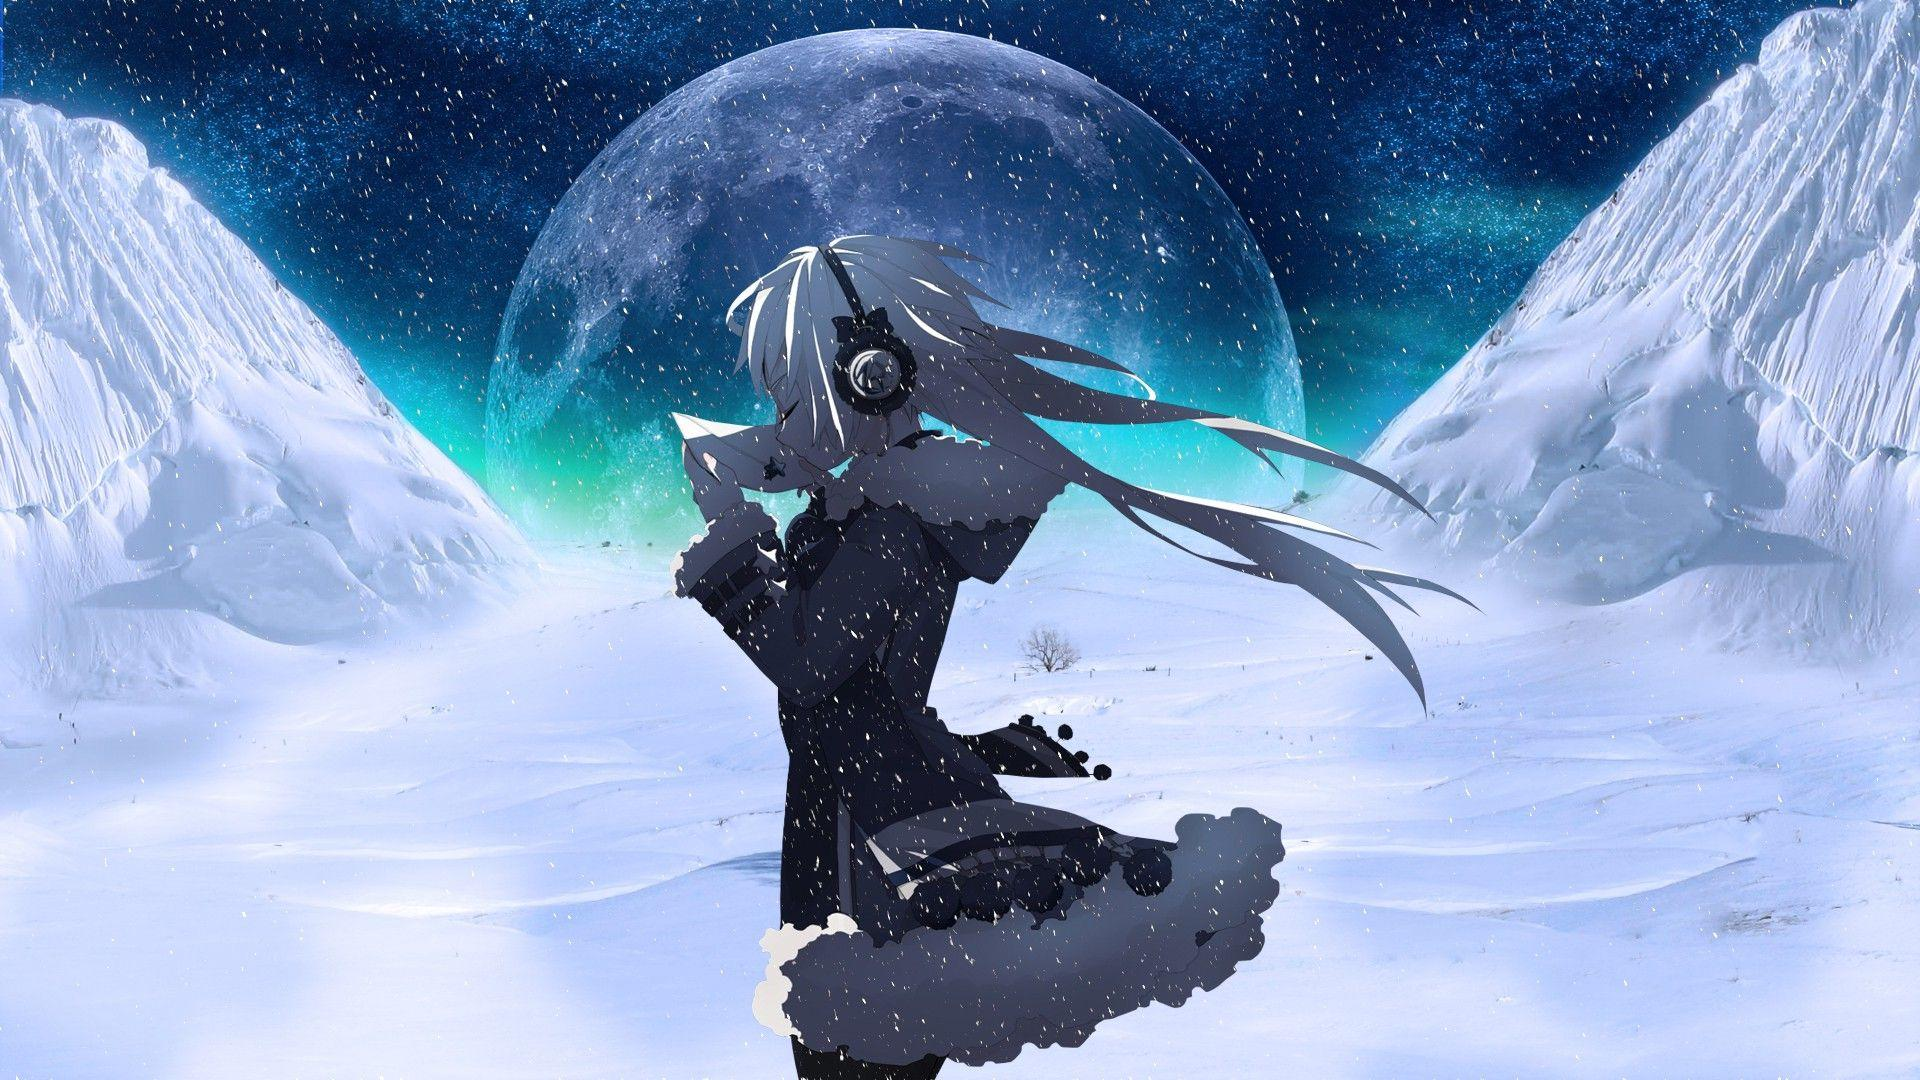 Freezing Anime Wallpapers - Wallpaper Cave